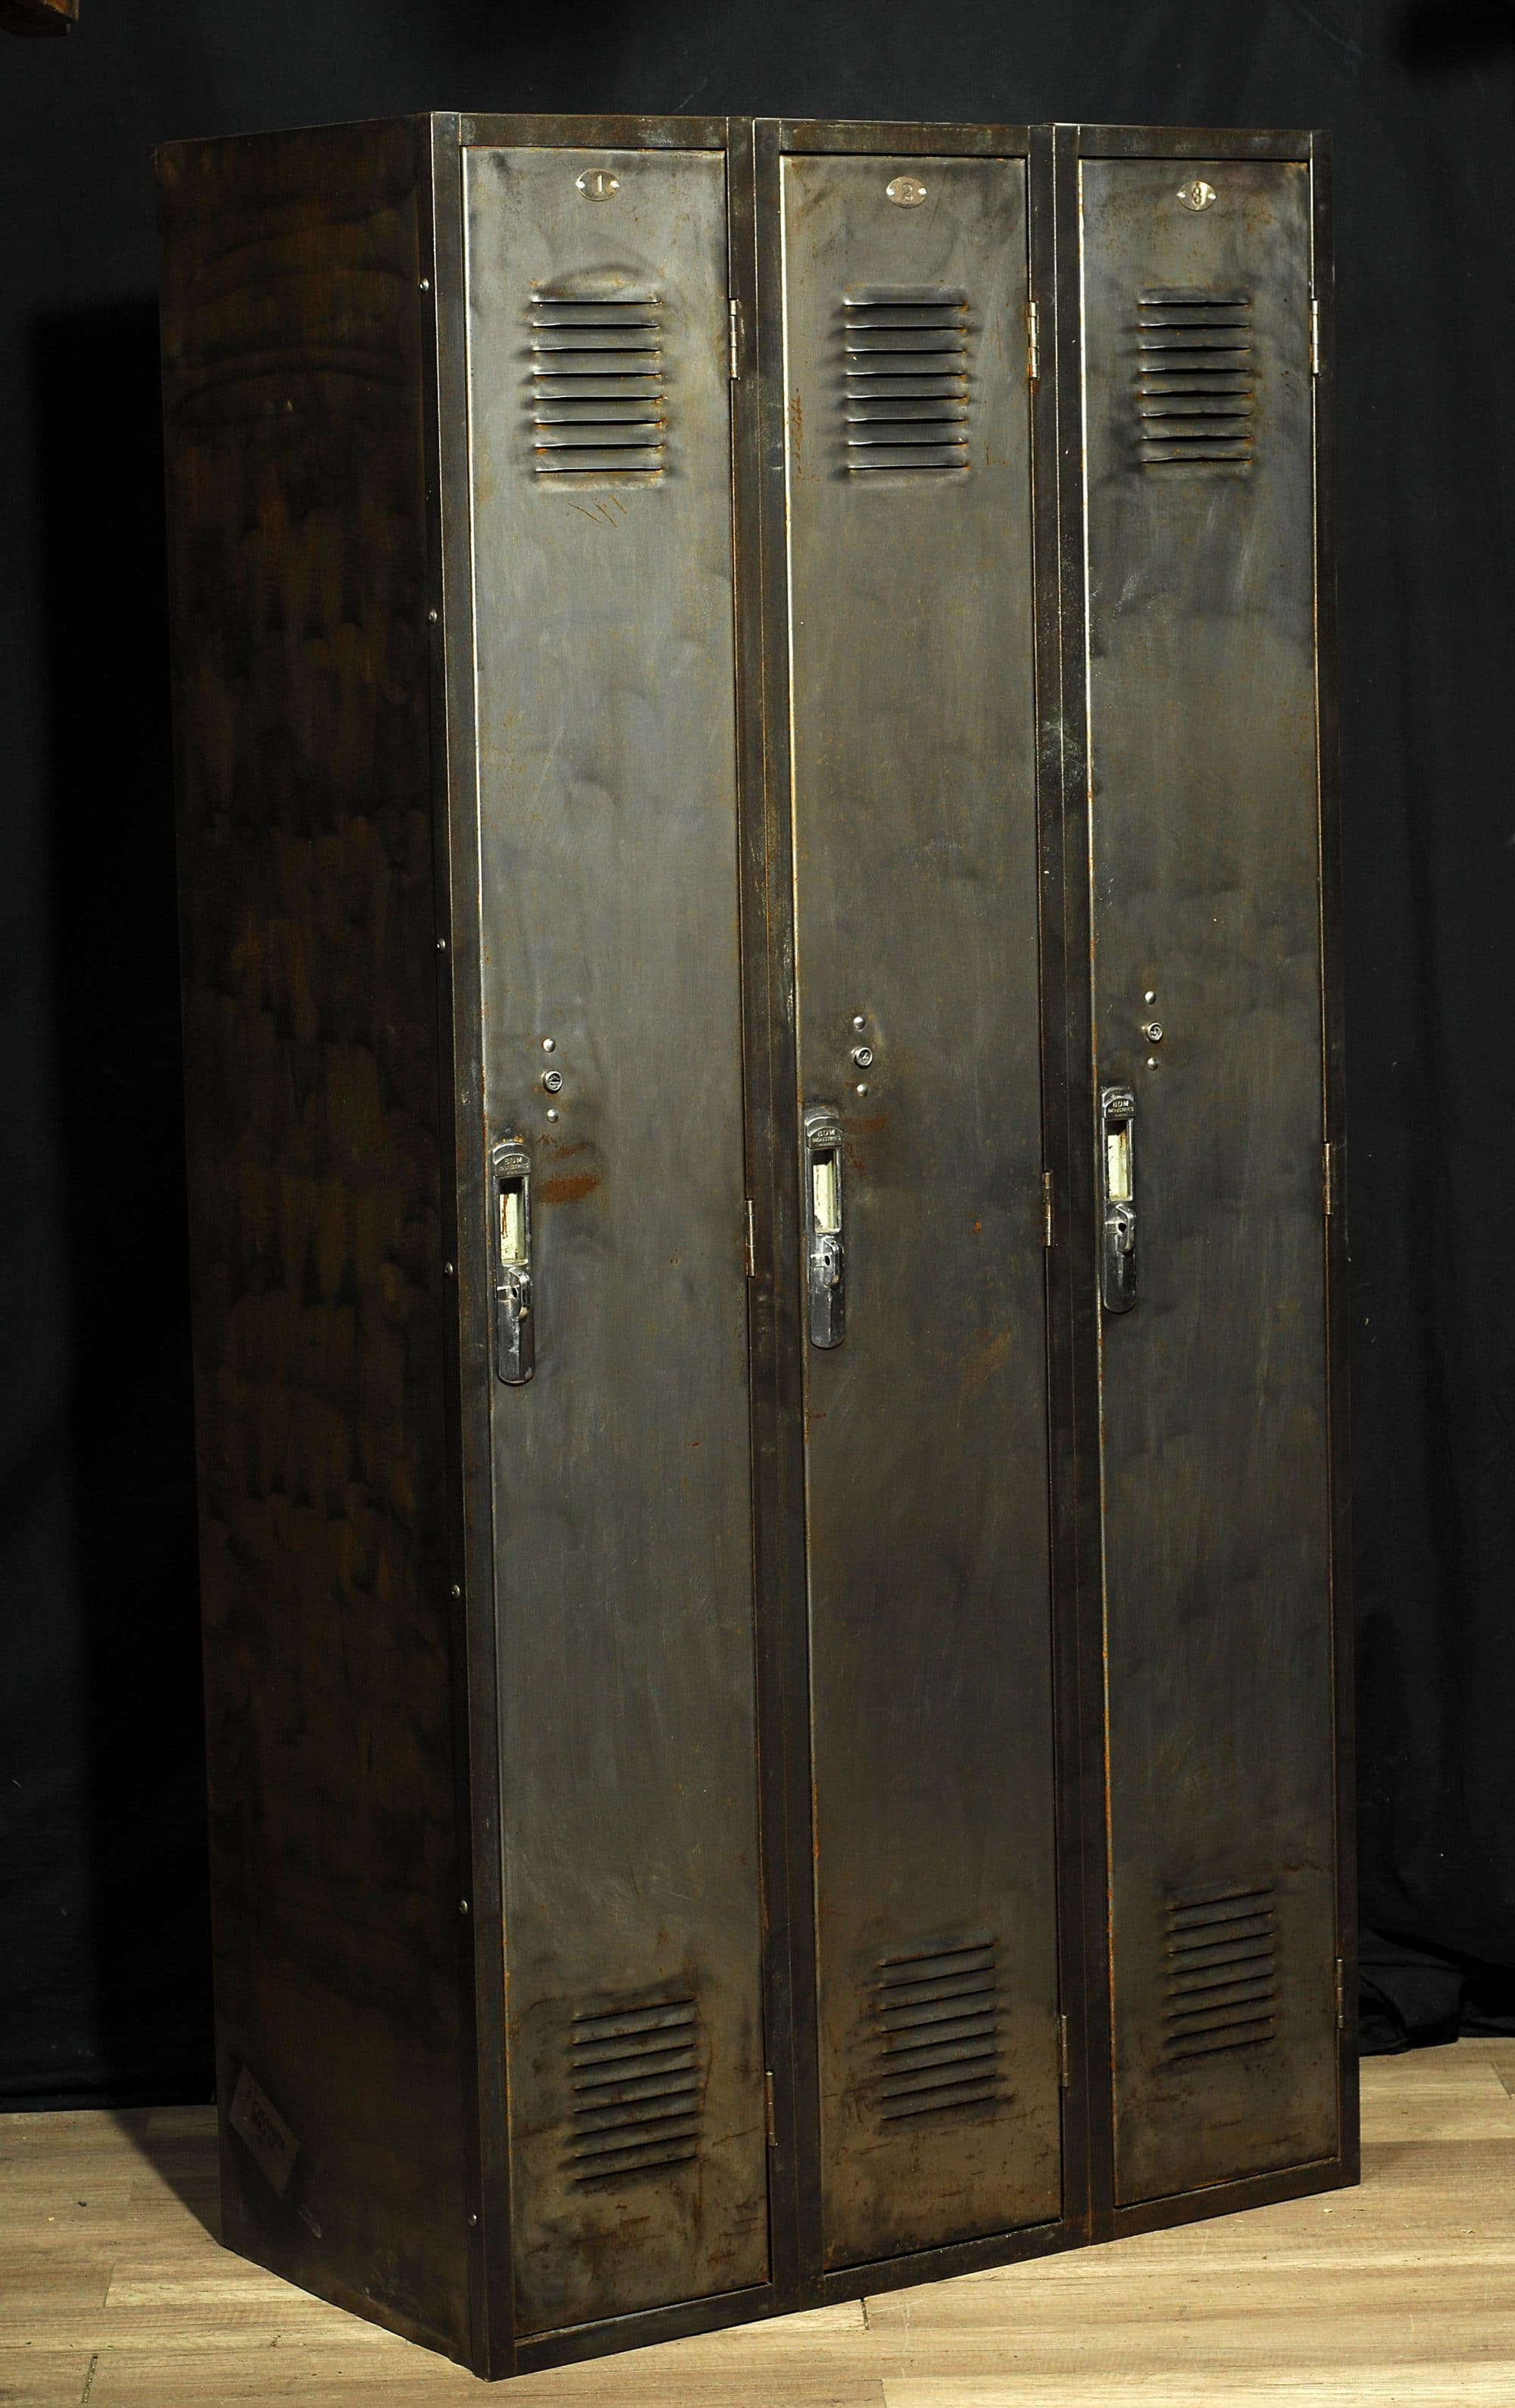 Casier Industriel Antique Metal Industrial Locker Steel 2 Chance Deco